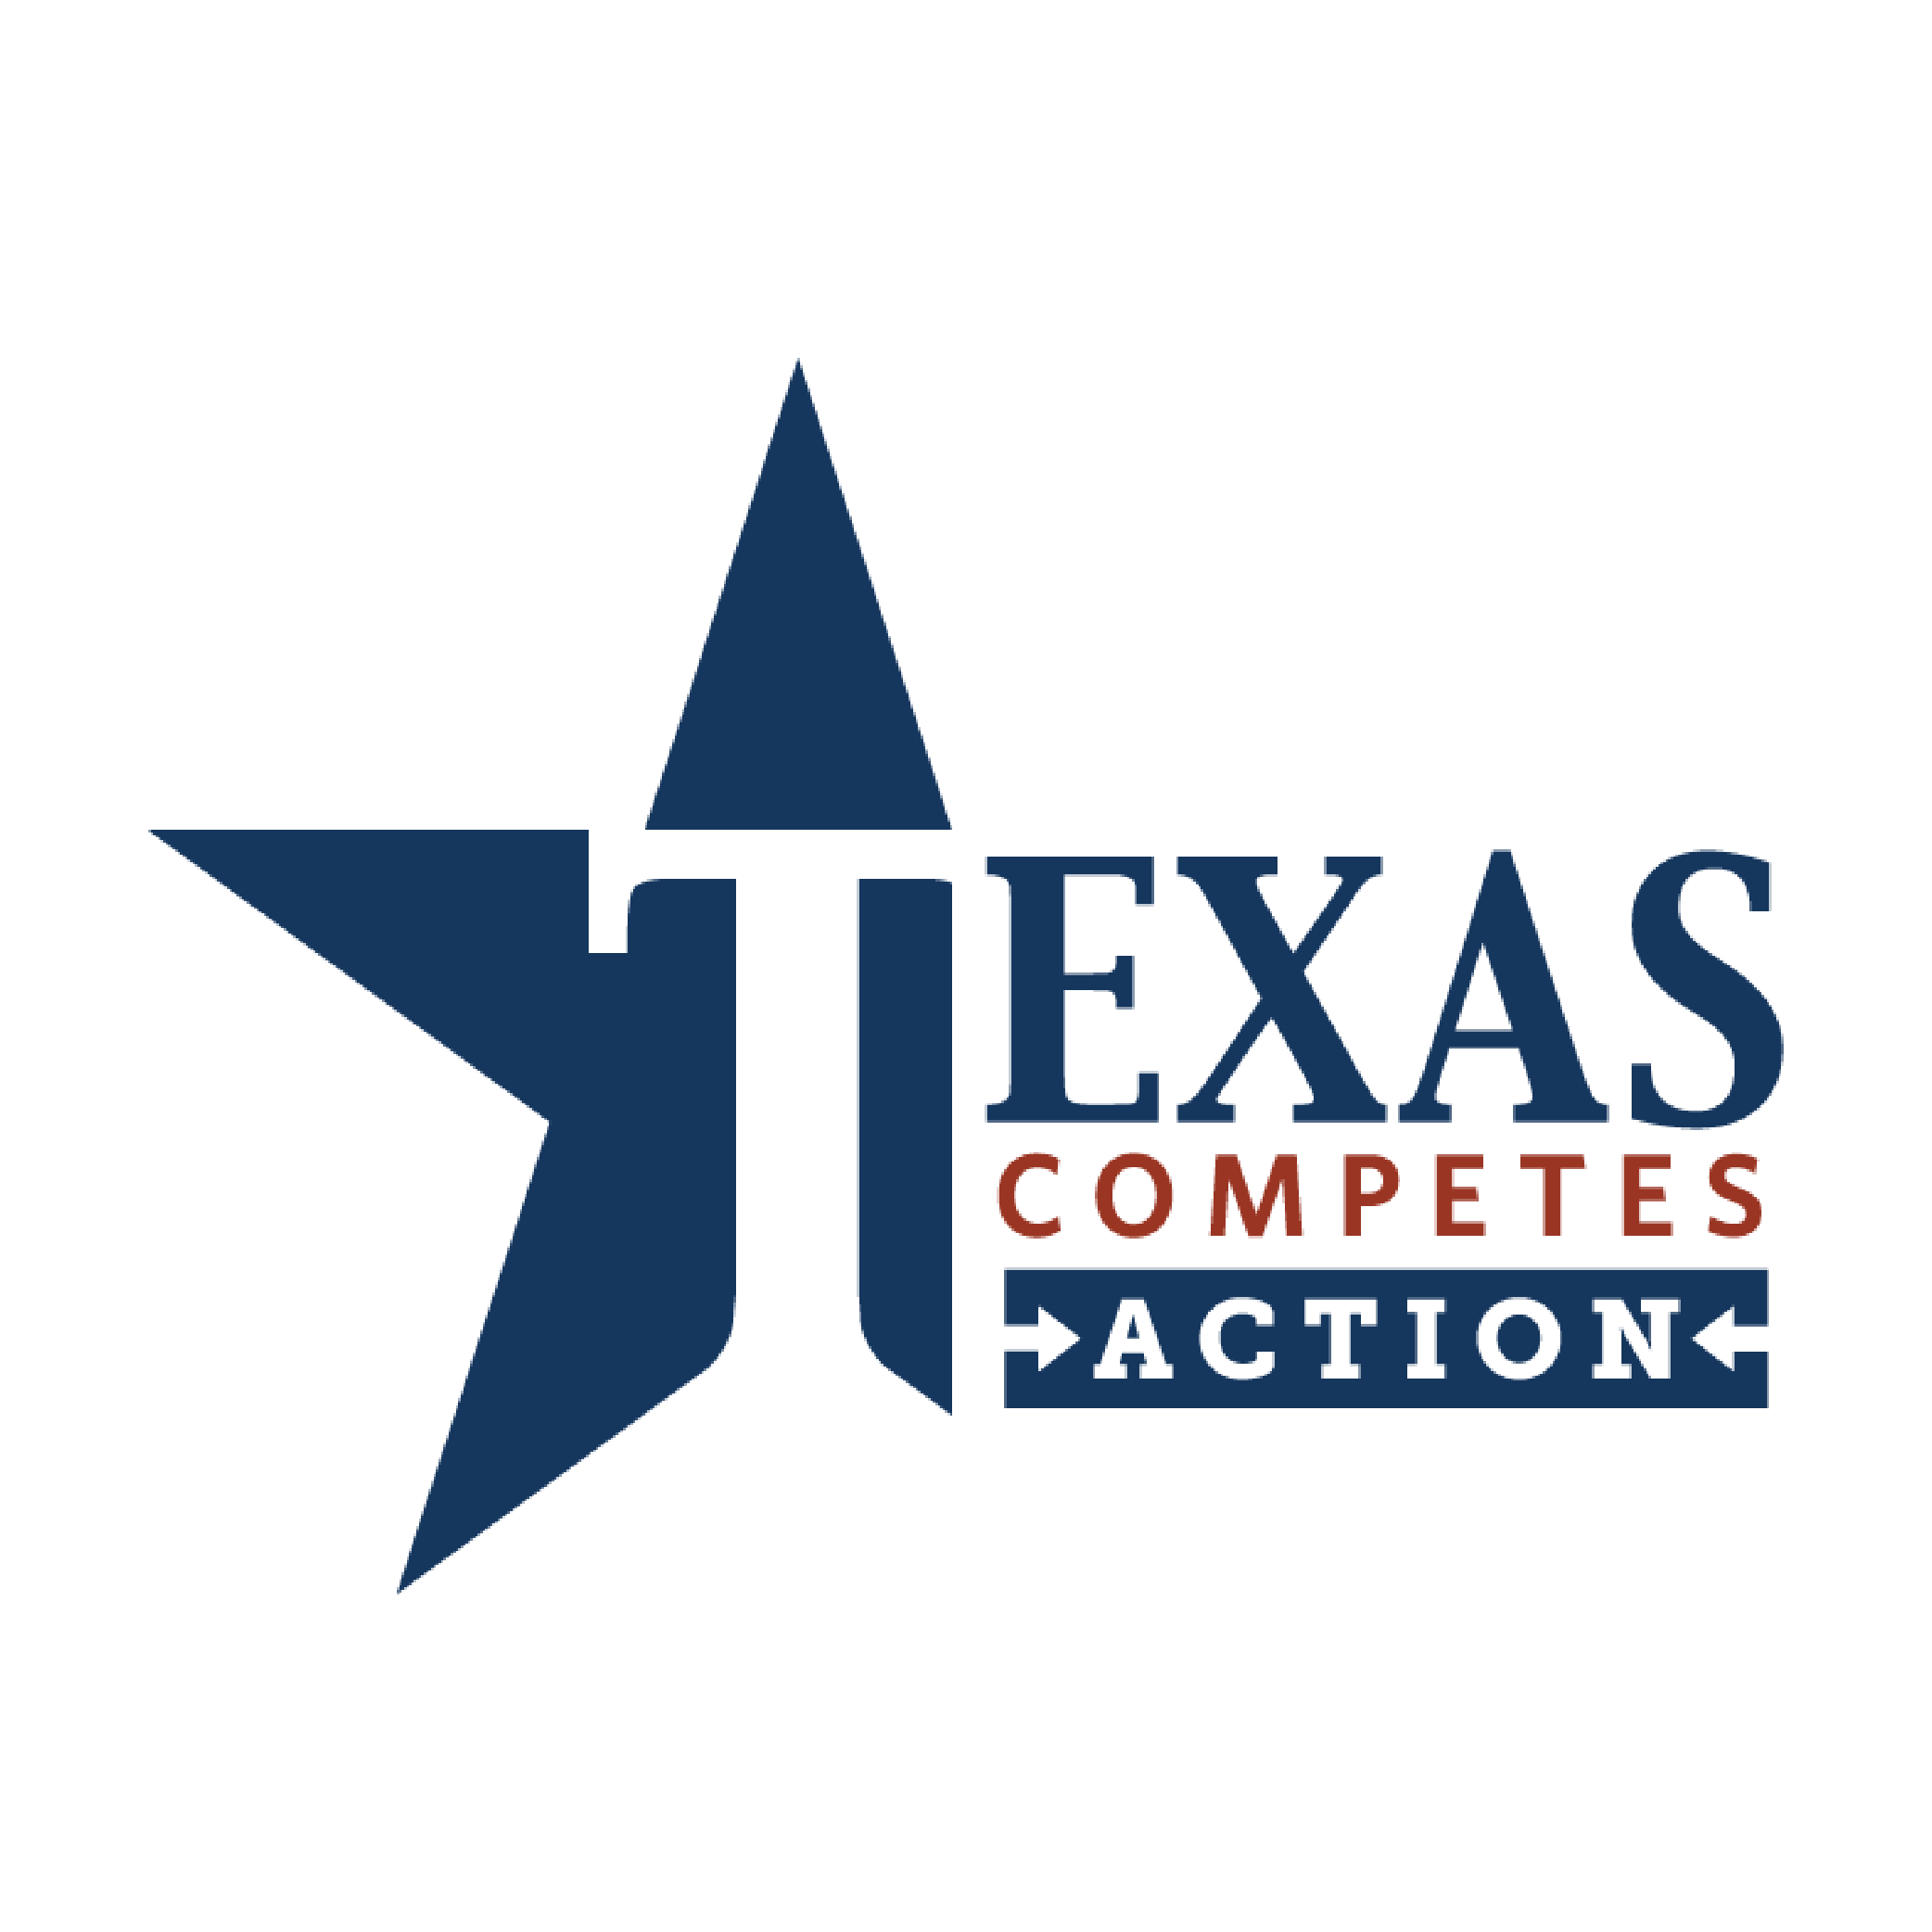 TexasCompetes2-01.png